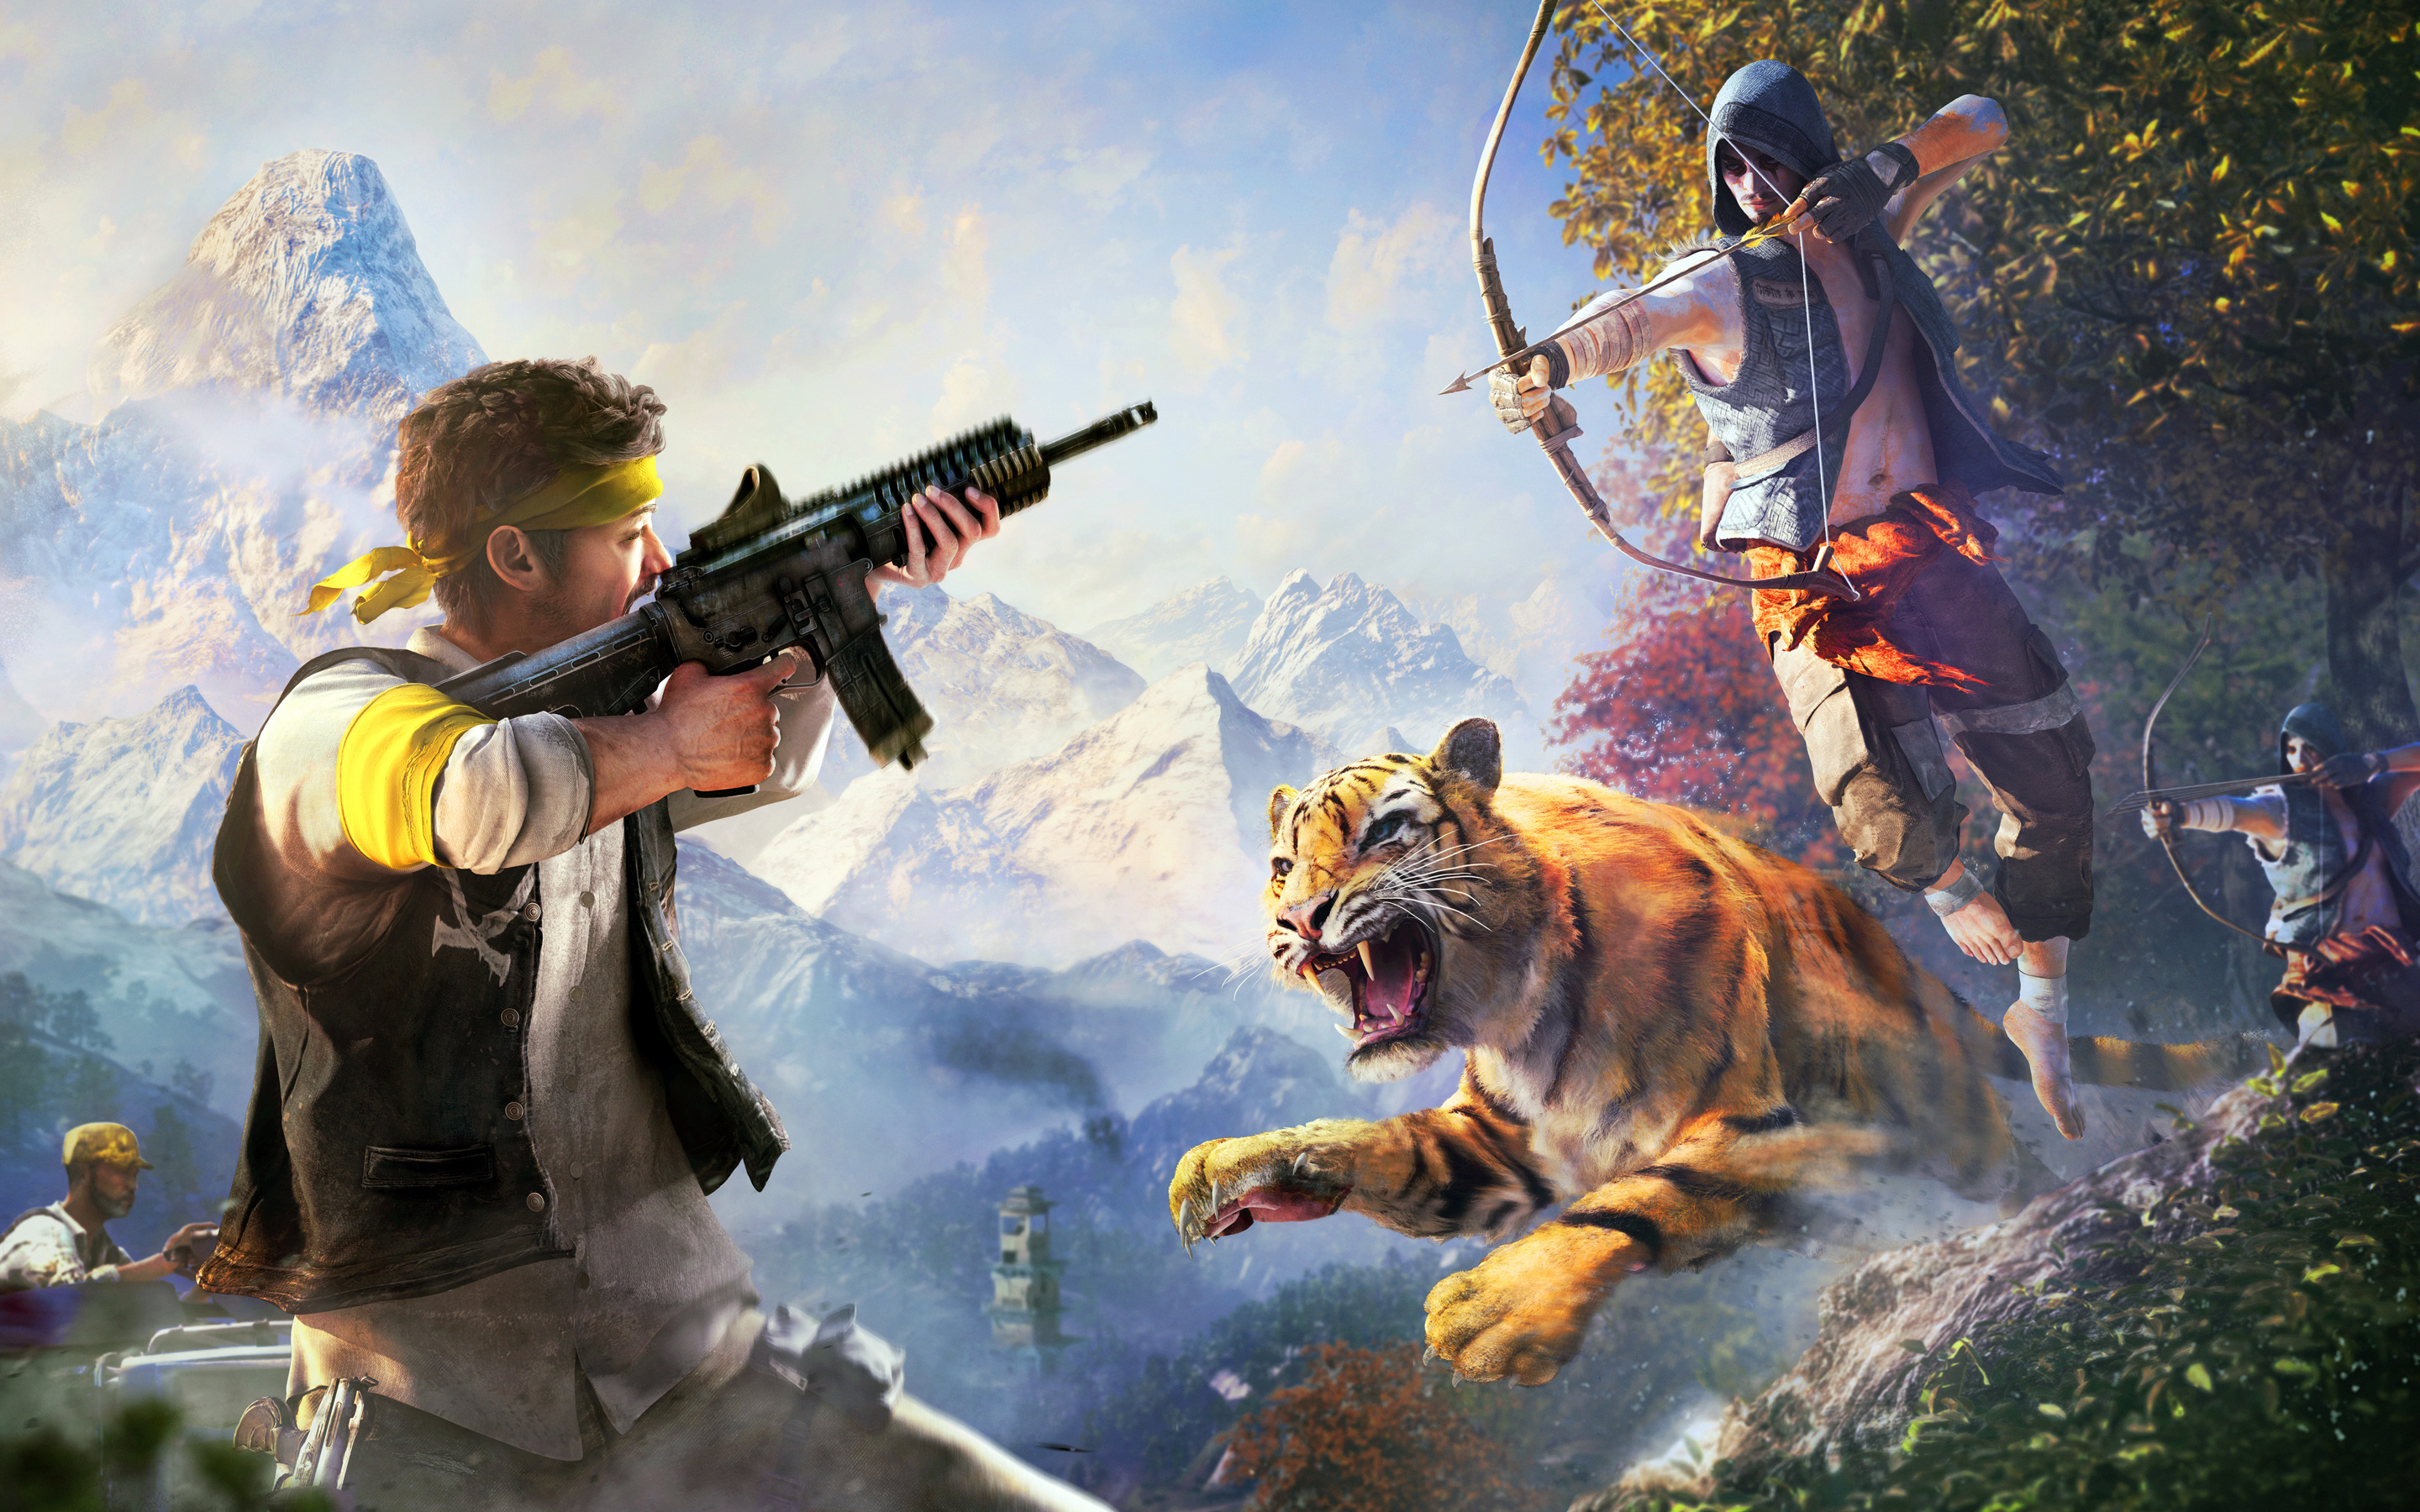 HD Wallpapers Far Cry 4 2014